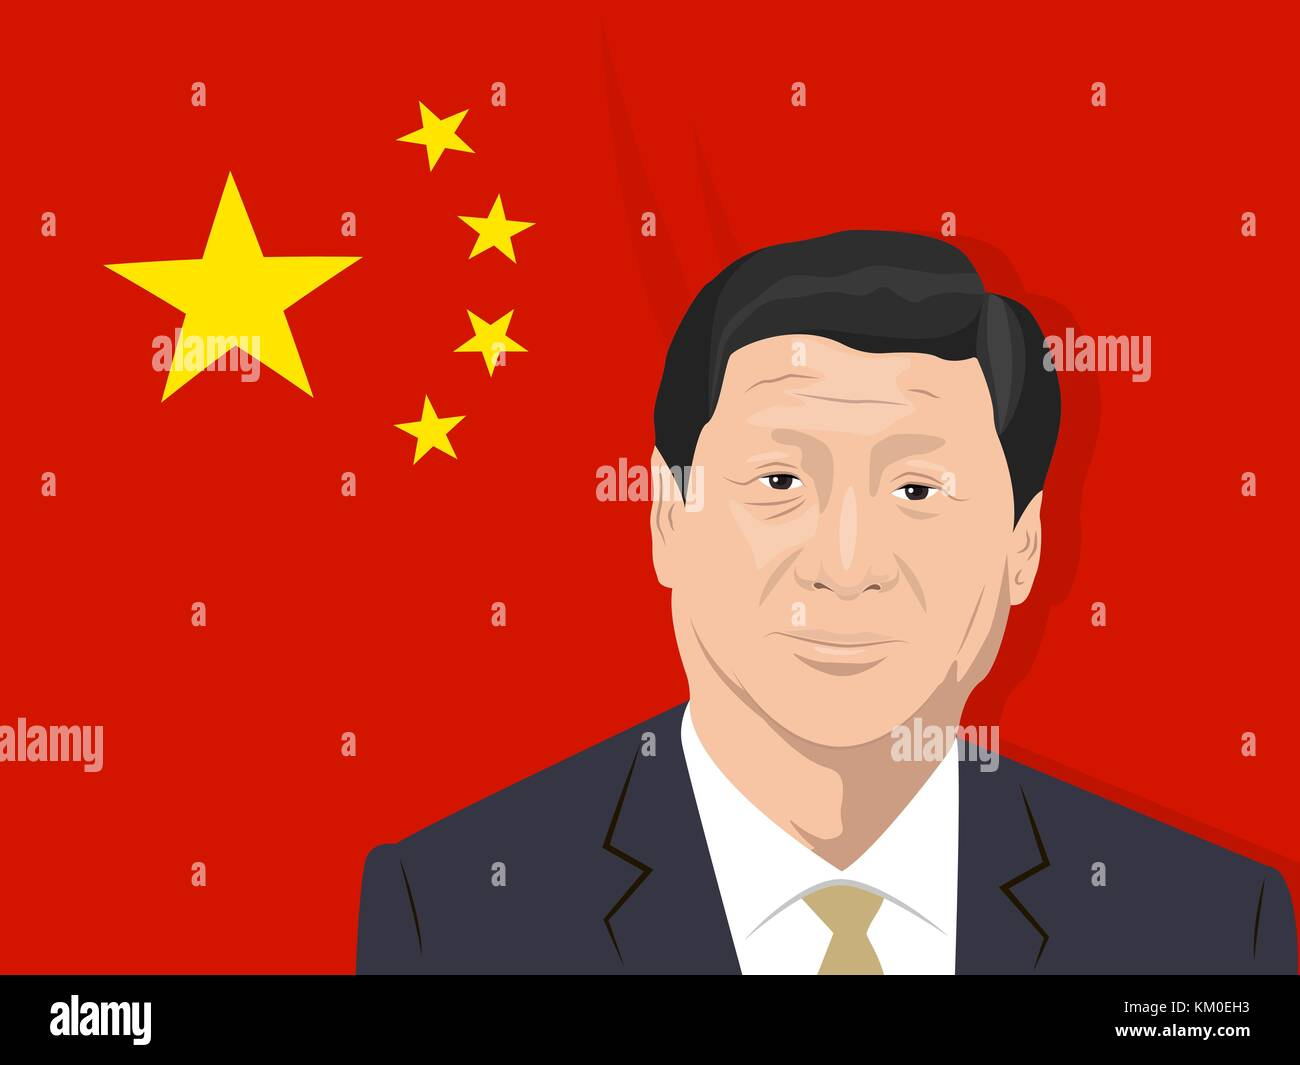 02.12.2017 Editorial illustration of Xi Jinping- the General Secretary of the Communist Party of China, the President - Stock Vector